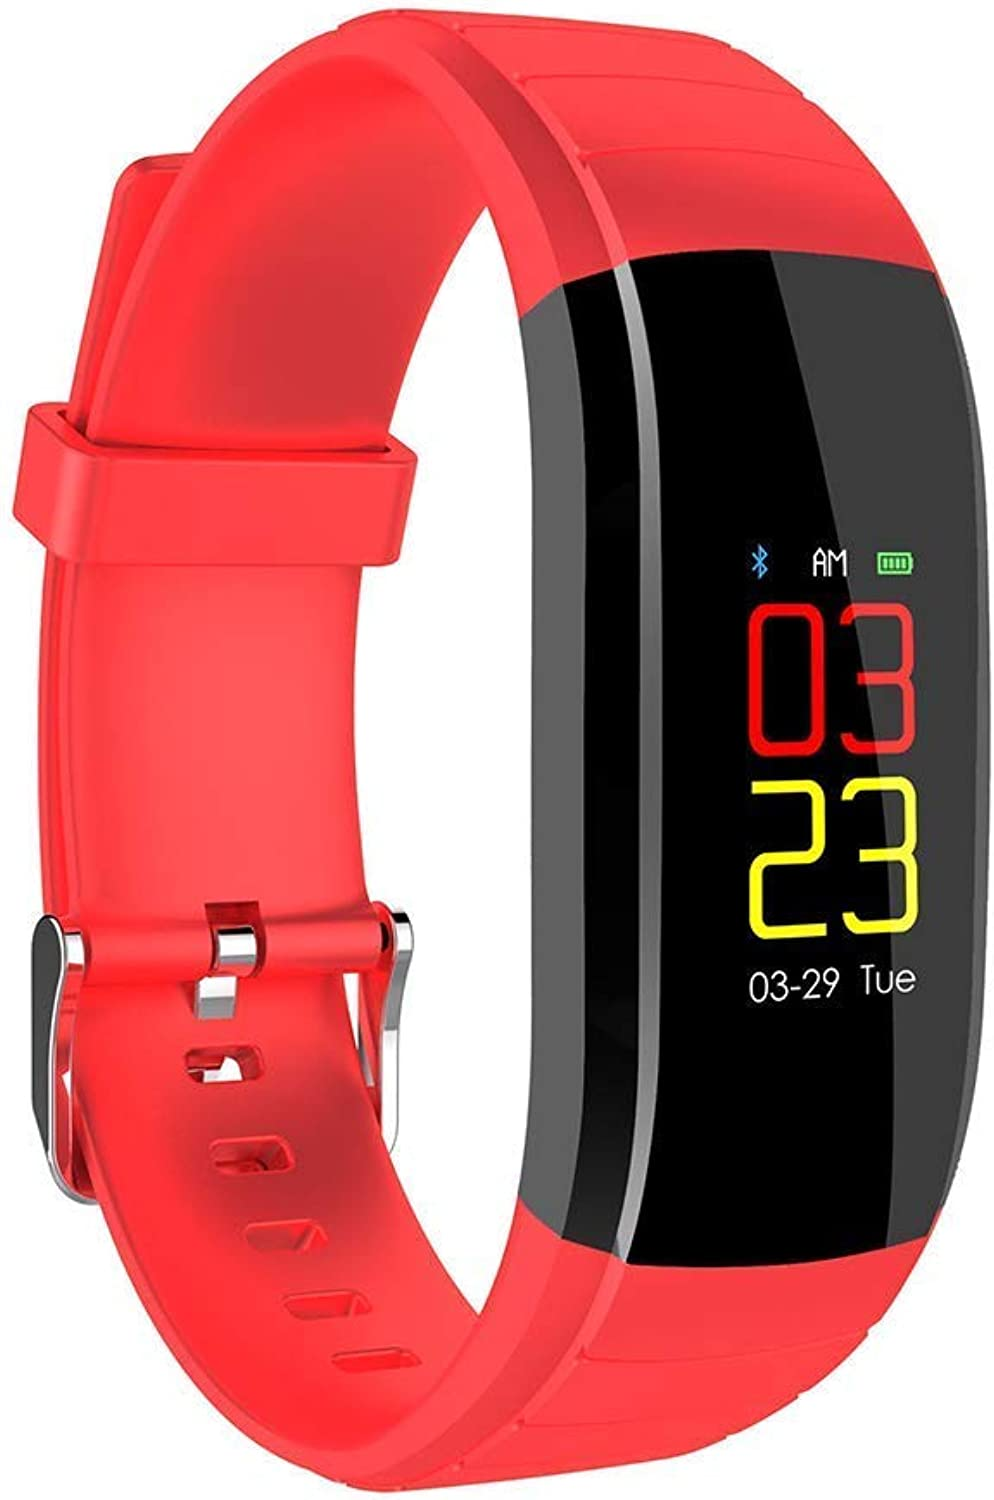 Smart IP67 Waterproof Fitness Tracker Activity Tracking Watch, Smart Bracelet With Pedometer, Fitness Watch With Heart Rate Monitor, Monitor Watch (color   RED)